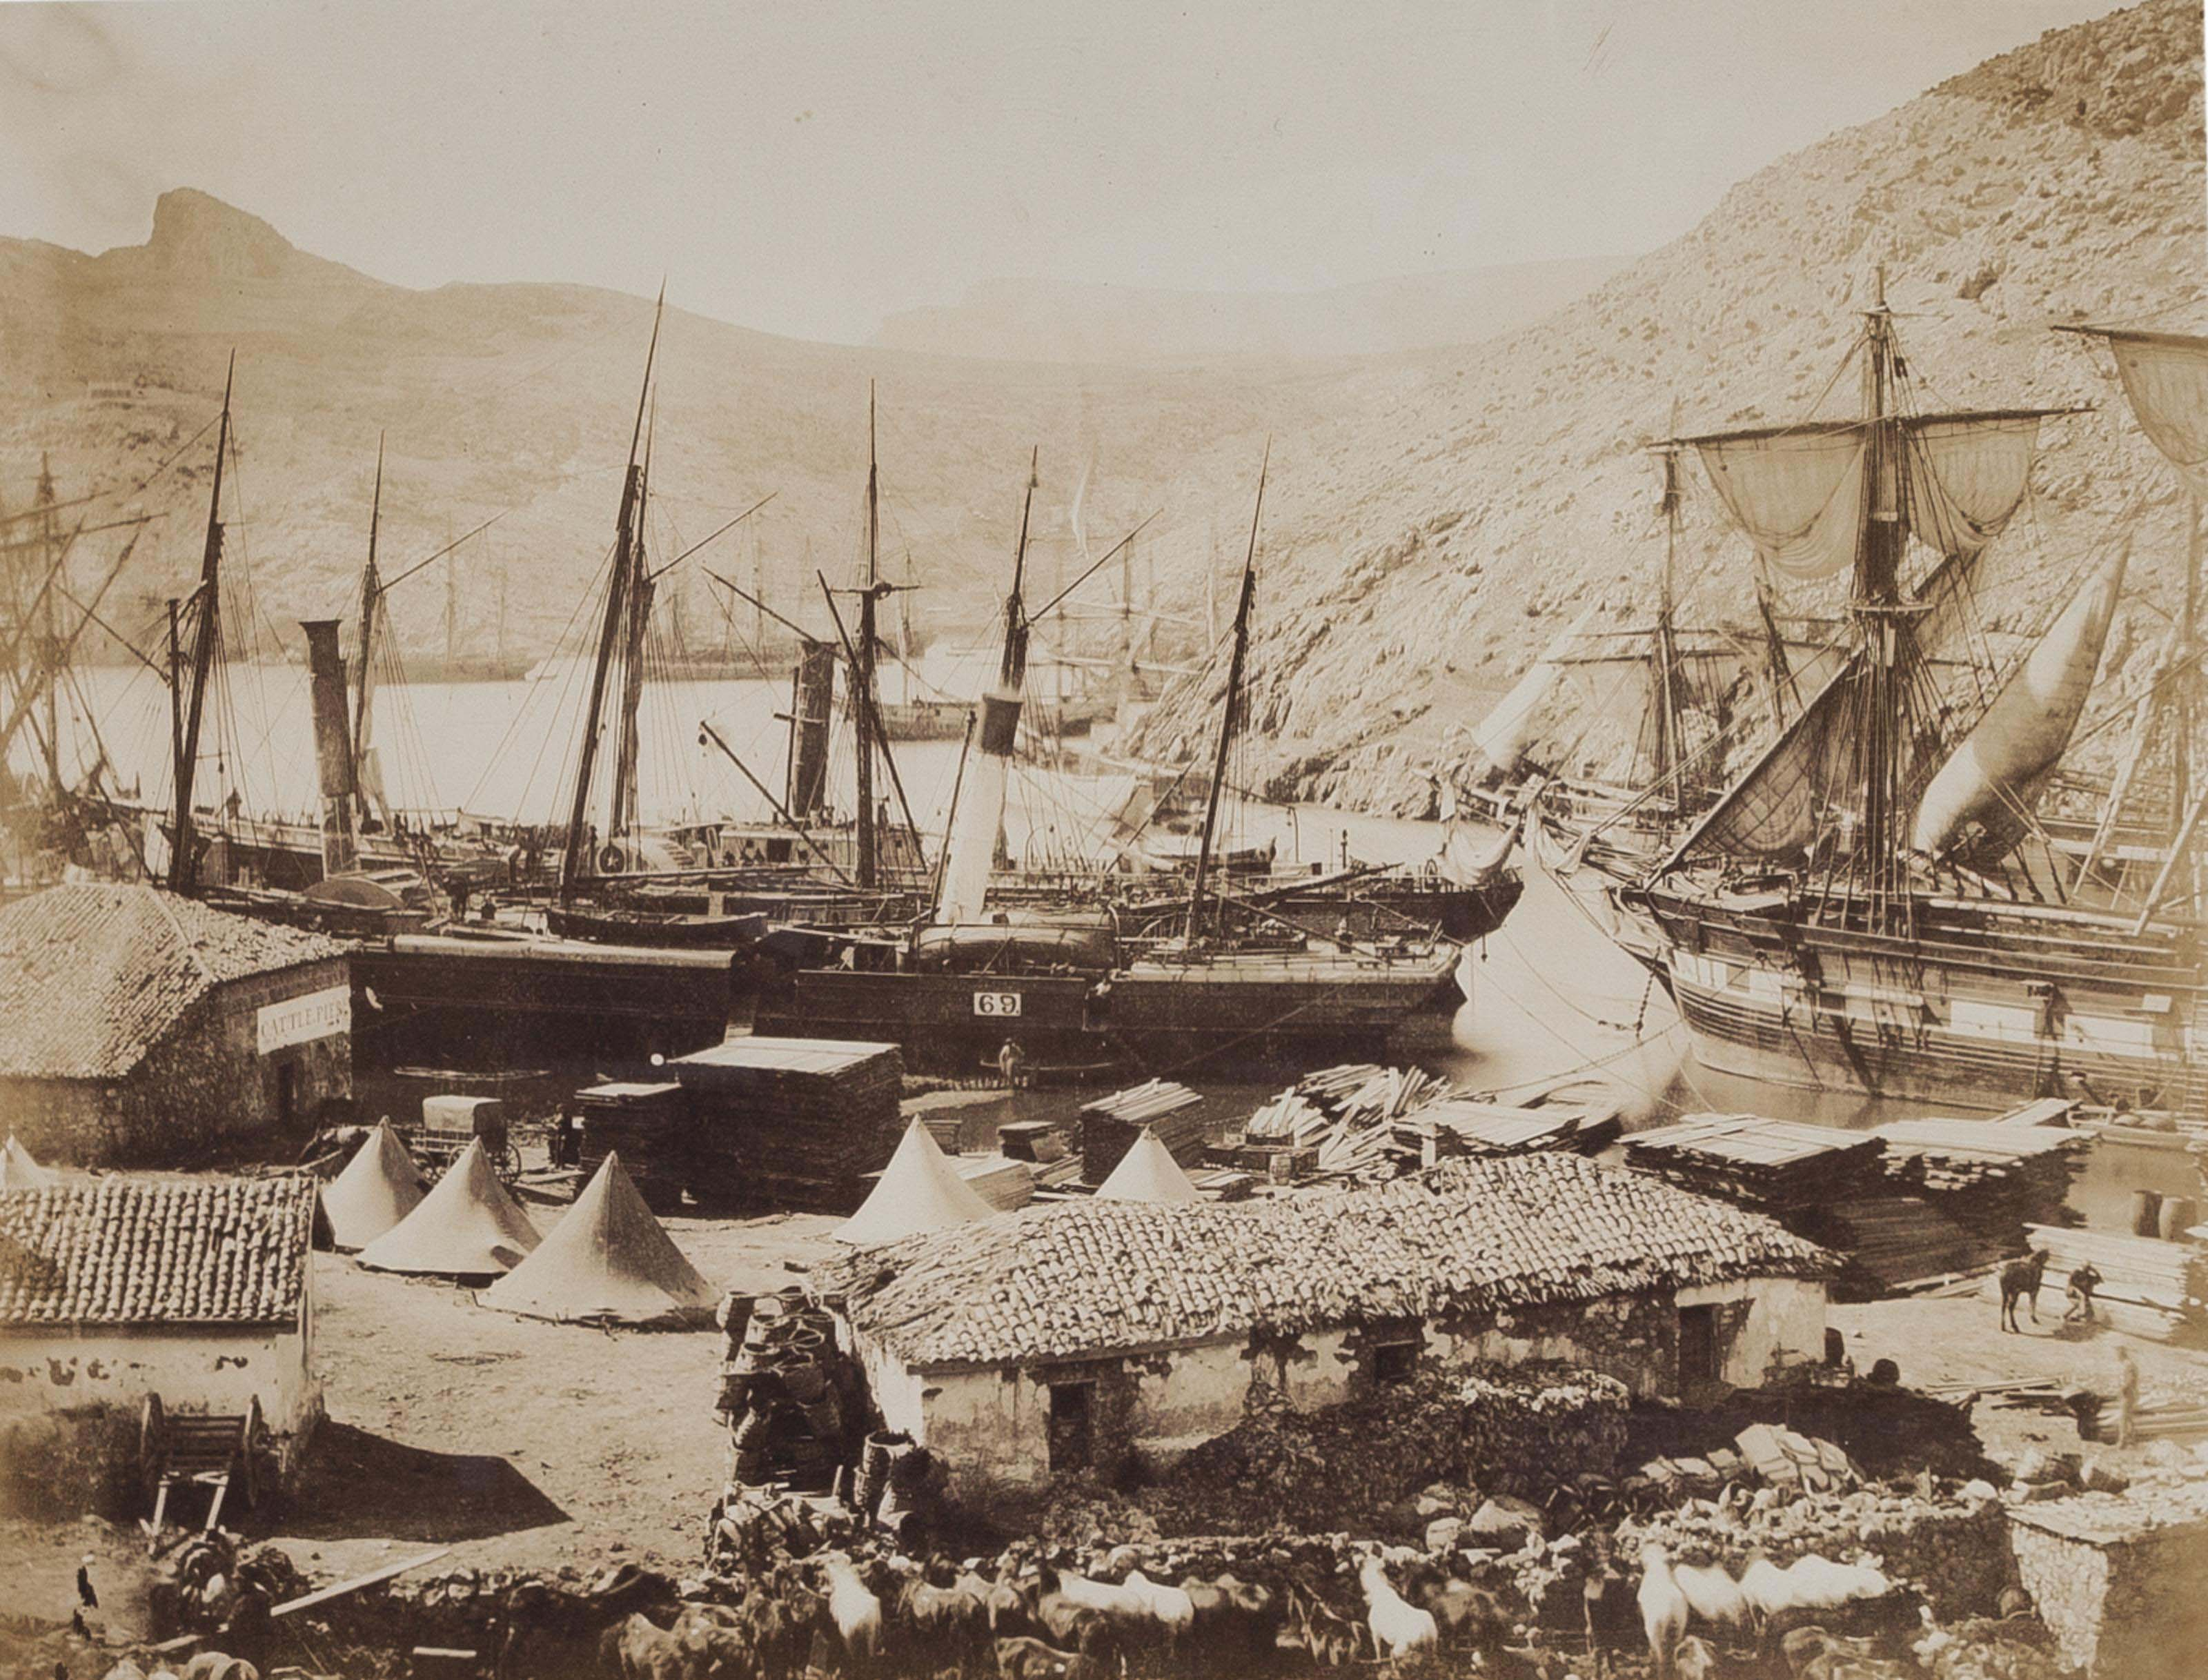 Cattle pier, Cossak Bay, Balaklava, 1856